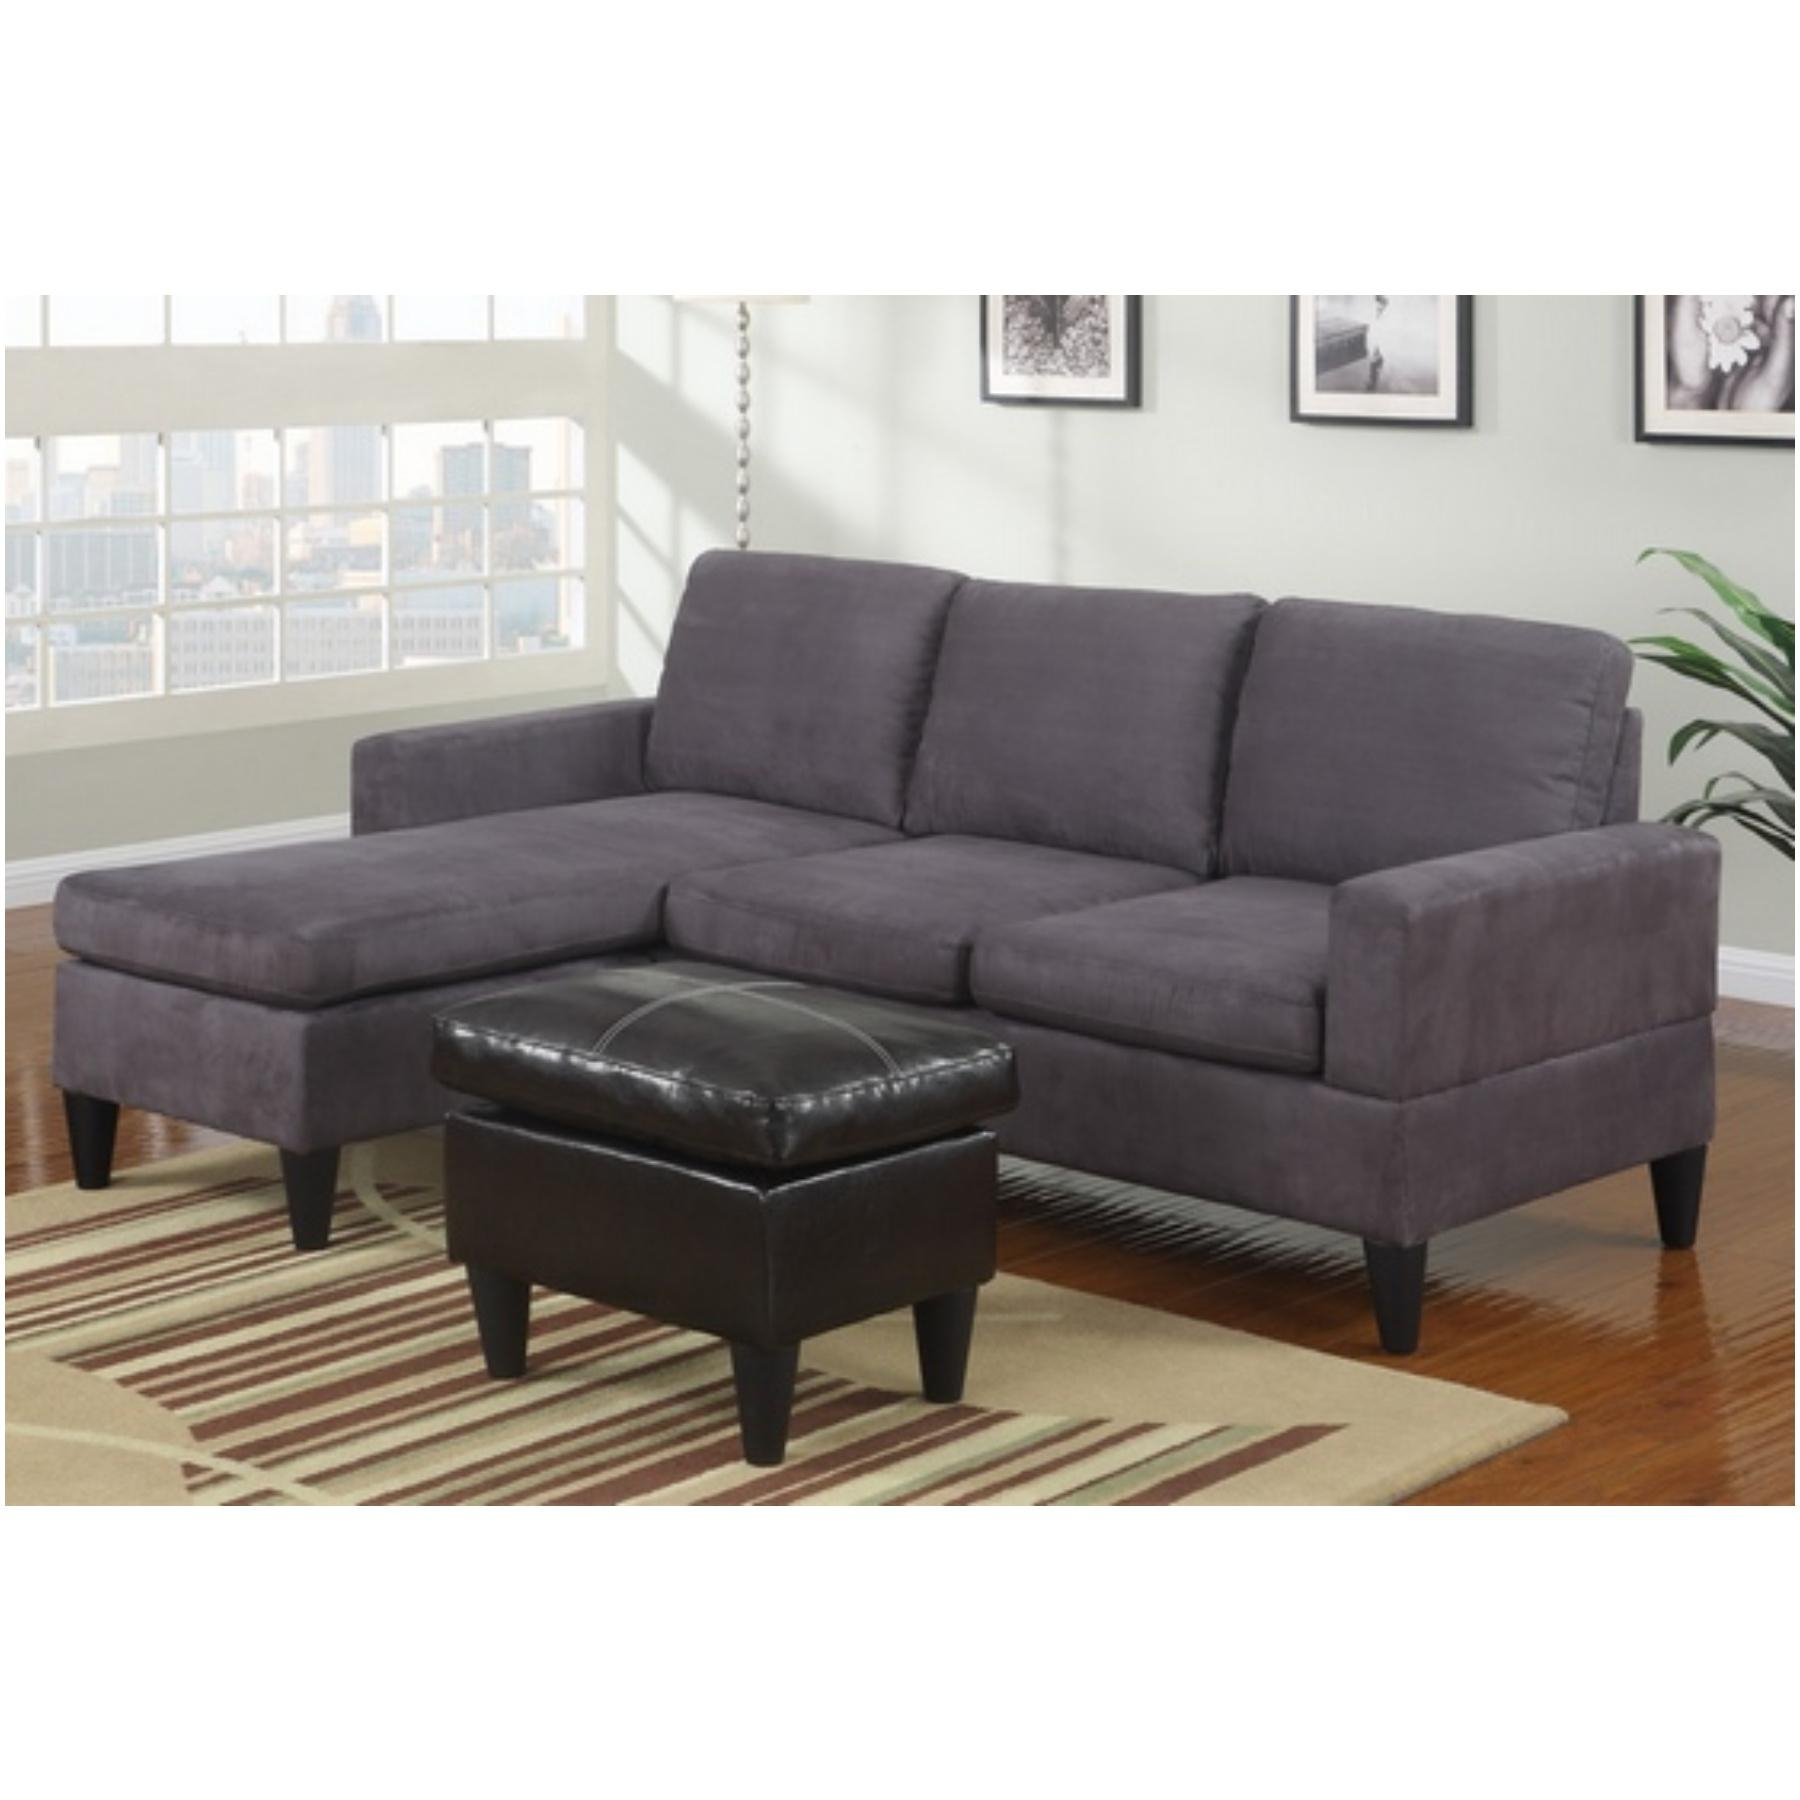 15 choices of apartment sectional sofa with chaise sofa for Apartment size chaise lounge